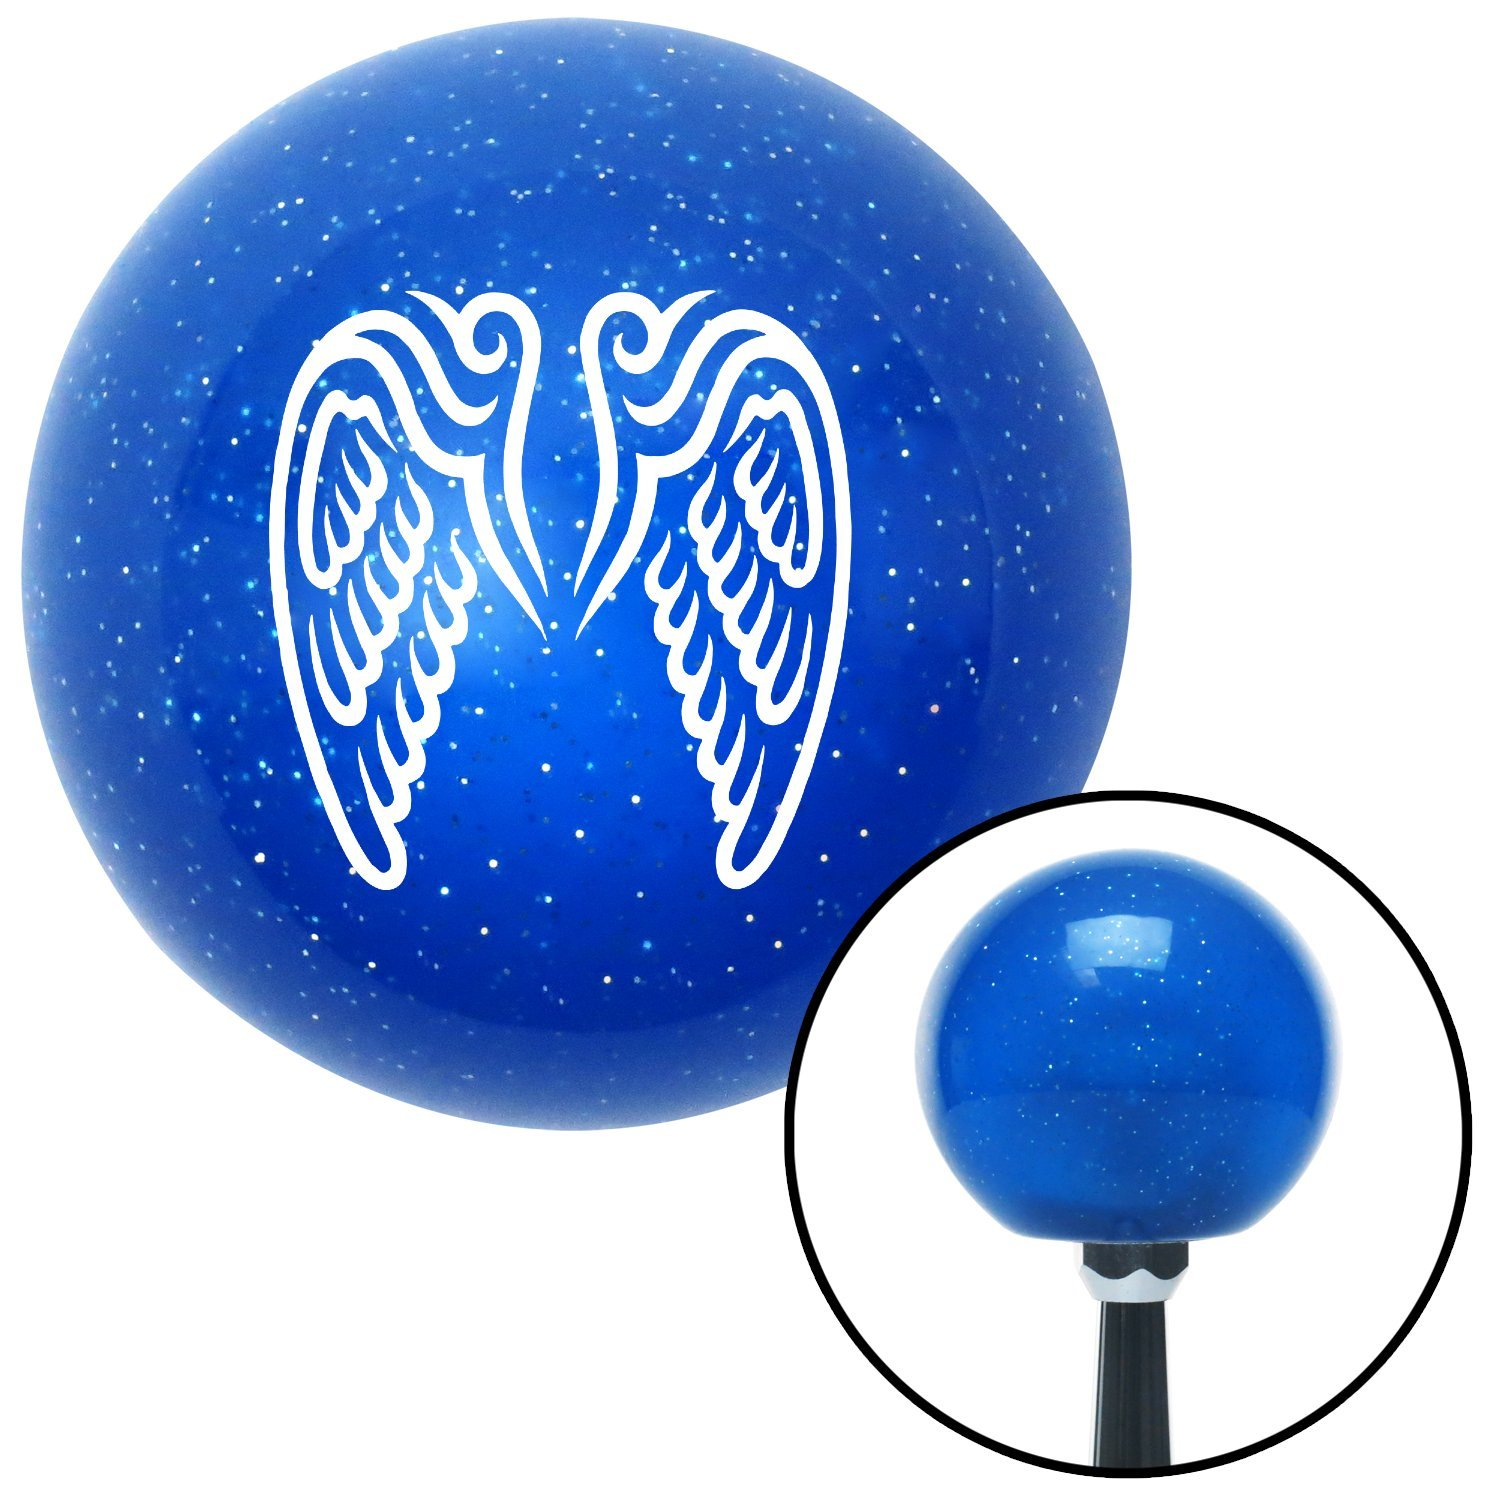 White Wings Conjoined in Lure American Shifter 23882 Blue Metal Flake Shift Knob